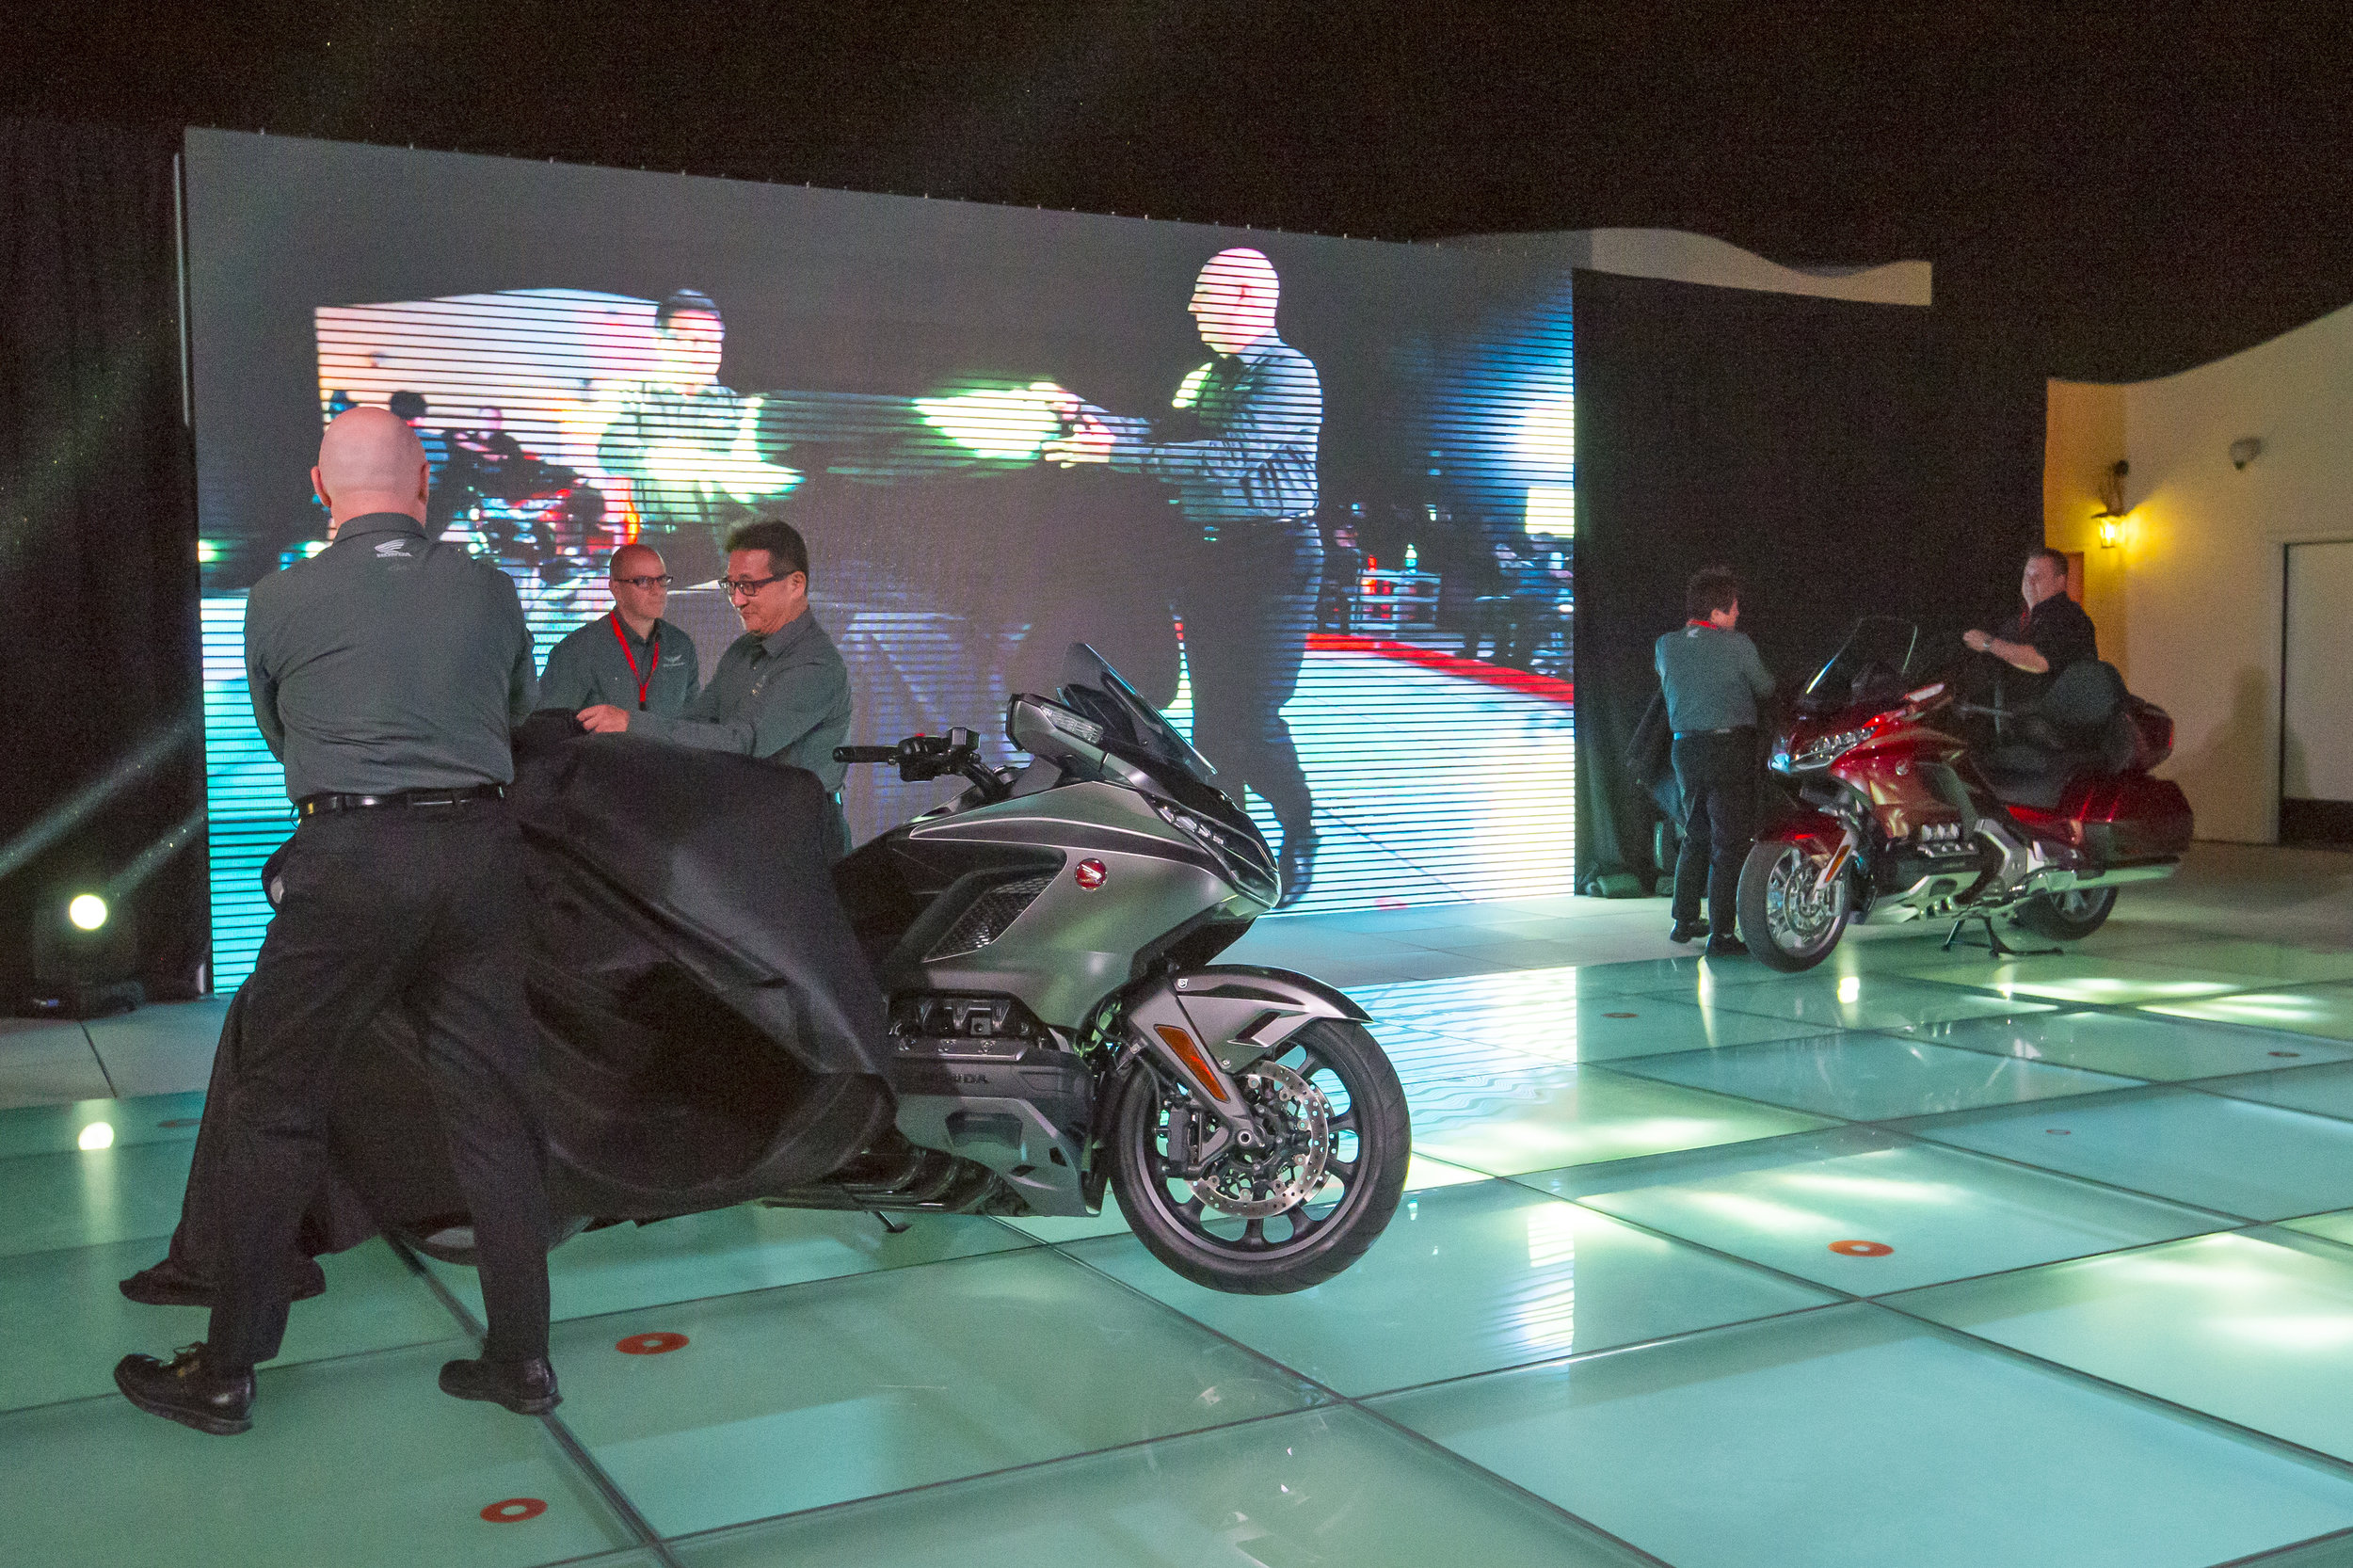 In collaboration with Islay Events, Jonnum Media and American Honda executed a dynamic unveiling that engaged the live audience as well as those viewing on Facebook Live.  Image: Kevin Wing